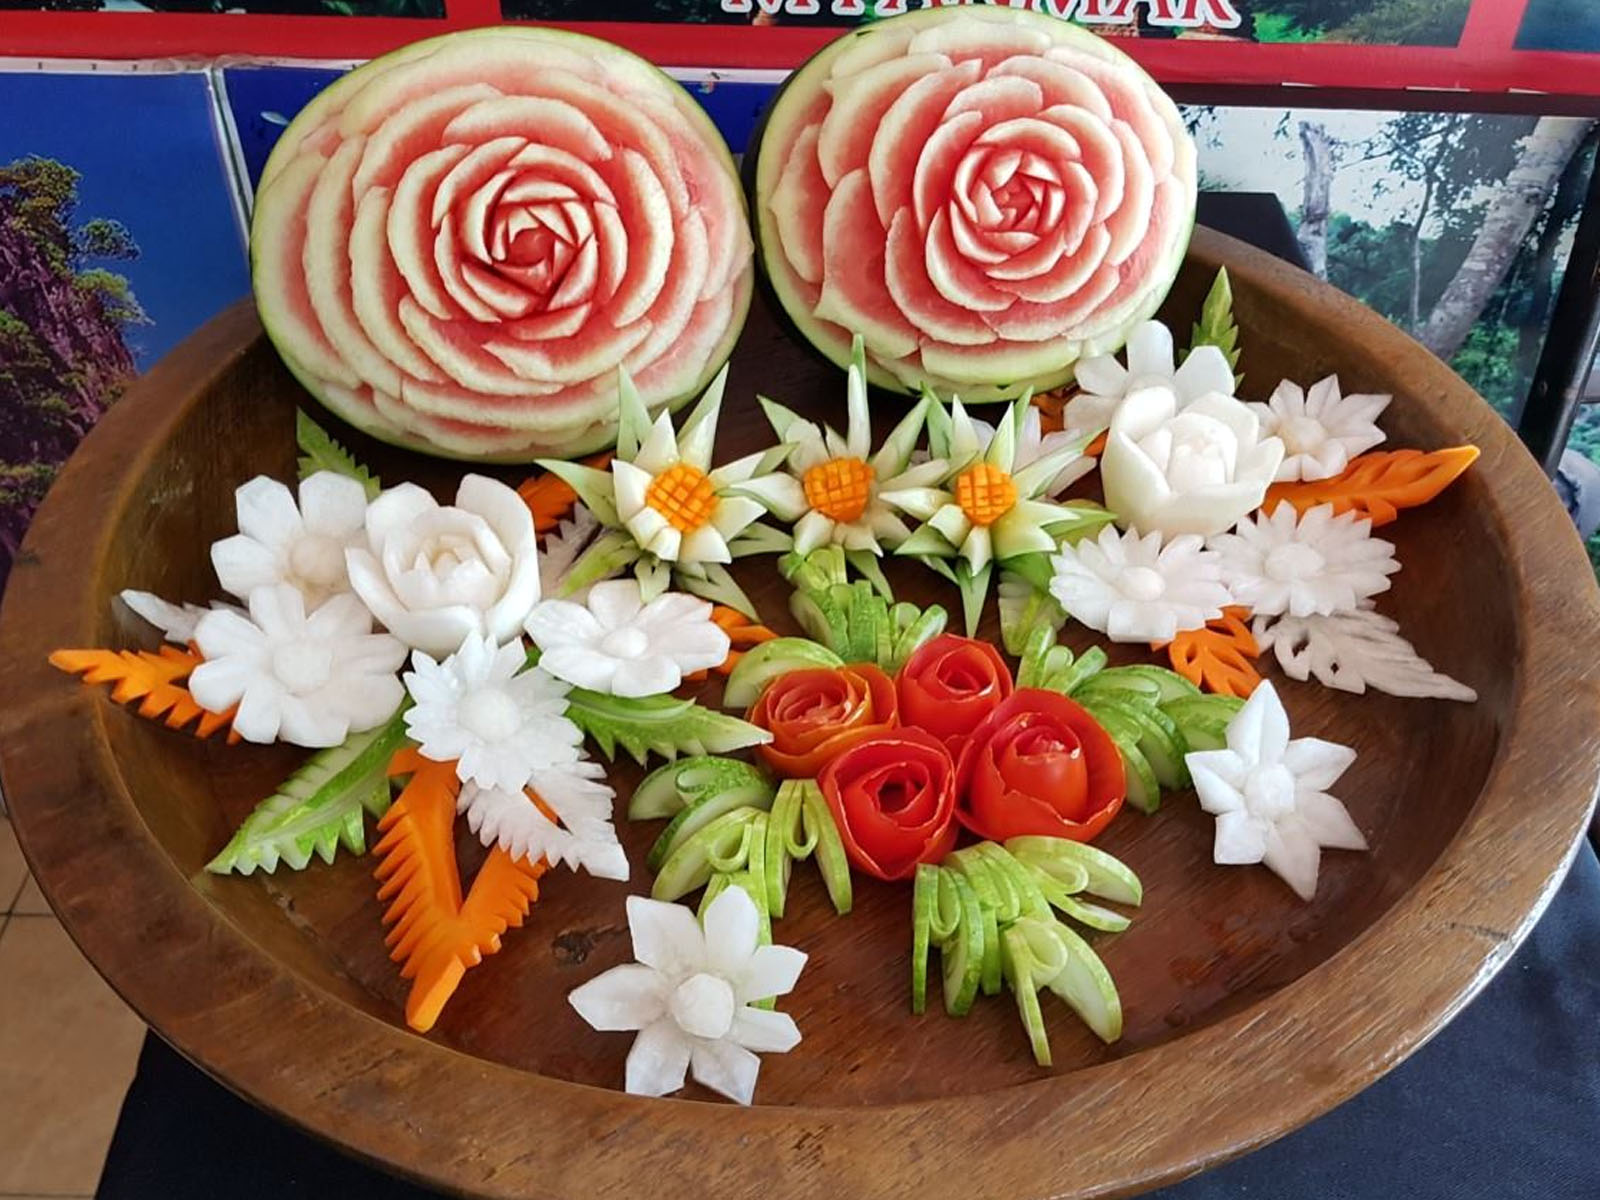 Learn Fruit-Carving | Chiang Mai Trekking | The best trekking in Chiang Mai with Piroon Nantaya